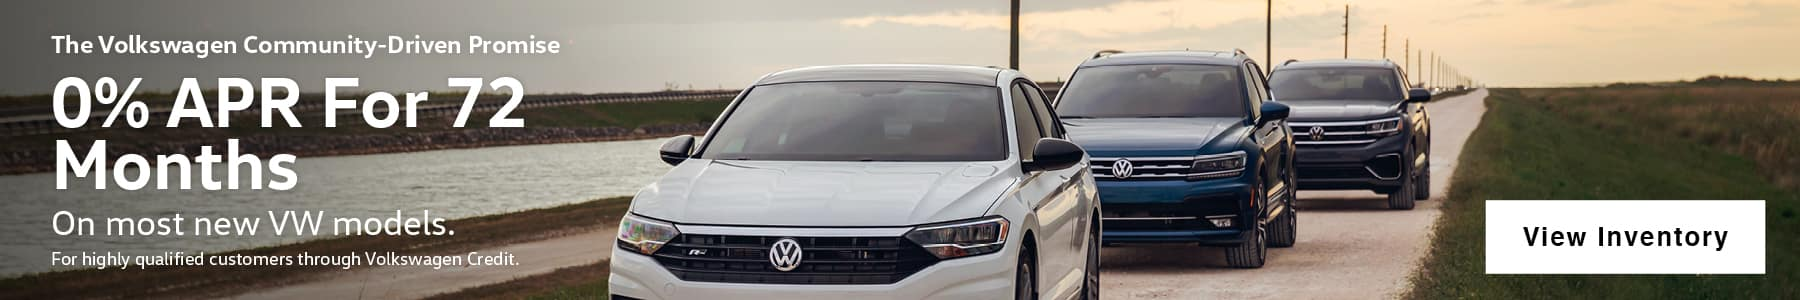 As Low As 0% APR for Up to 72 Months. 0% APR, no down payment required. Available on new, unused 2020 Tiguan, 2020 Jetta, 2020 Jetta GLI, 2020 Passat, 2020 Golf GTI, 2019 Golf SportWagen,  2019 Golf Alltrack, 2020 Golf ALL, 2019 Beetle, 2019 Golf R, 2020 Arteon, models financed by Volkswagen Credit through participating dealers only. Example: For 0% APR, monthly payment for every $1,000 you finance for 72 months is $13.89. Available on new, unused 2020 Atlas Cross Sport models financed by Volkswagen Credit through participating dealers only. Example: For 0% APR, monthly payment for every $1,000 you finance for 60 months is $16.67. Available on new, unused 2021 Atlas models financed by Volkswagen Credit through participating dealers only. Example: For 2.9% APR, monthly payment for every $1,000 you finance for 60 months is $17.92. Not all customers will qualify for credit approval or advertised APR. Offer ends September 30, 2020.